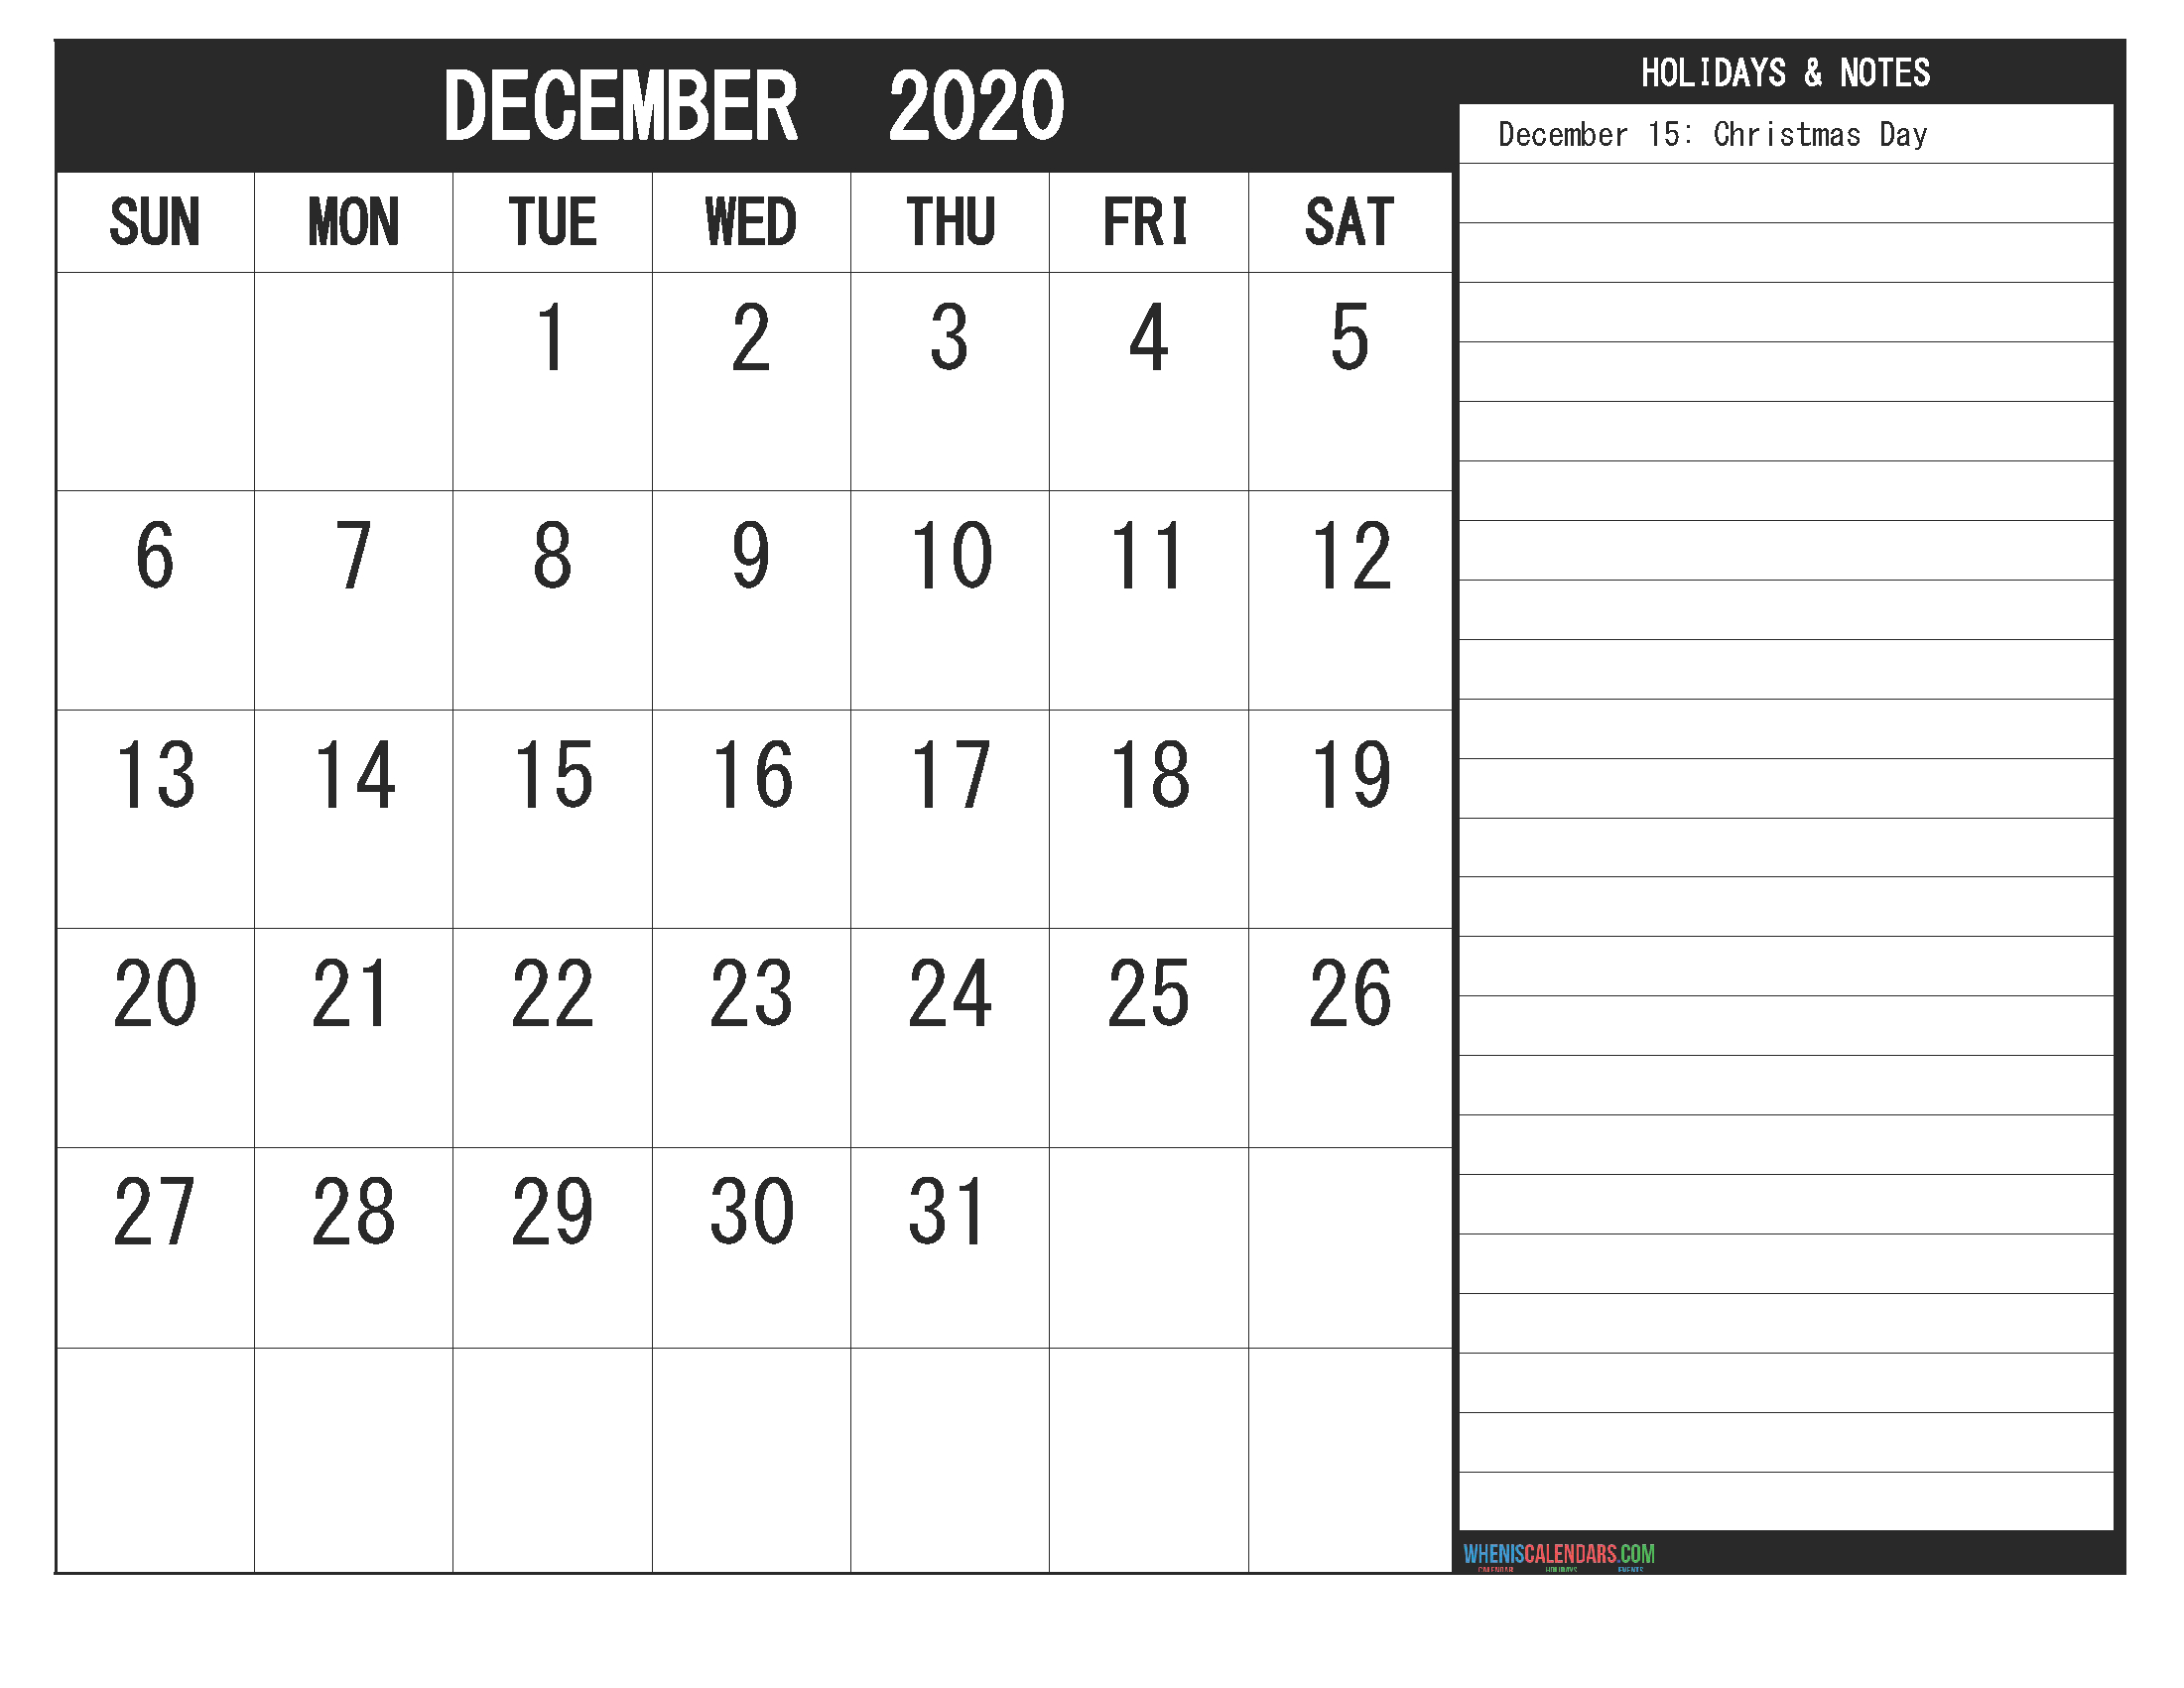 December 2020 Calendar With Holidays Free Printable | Free